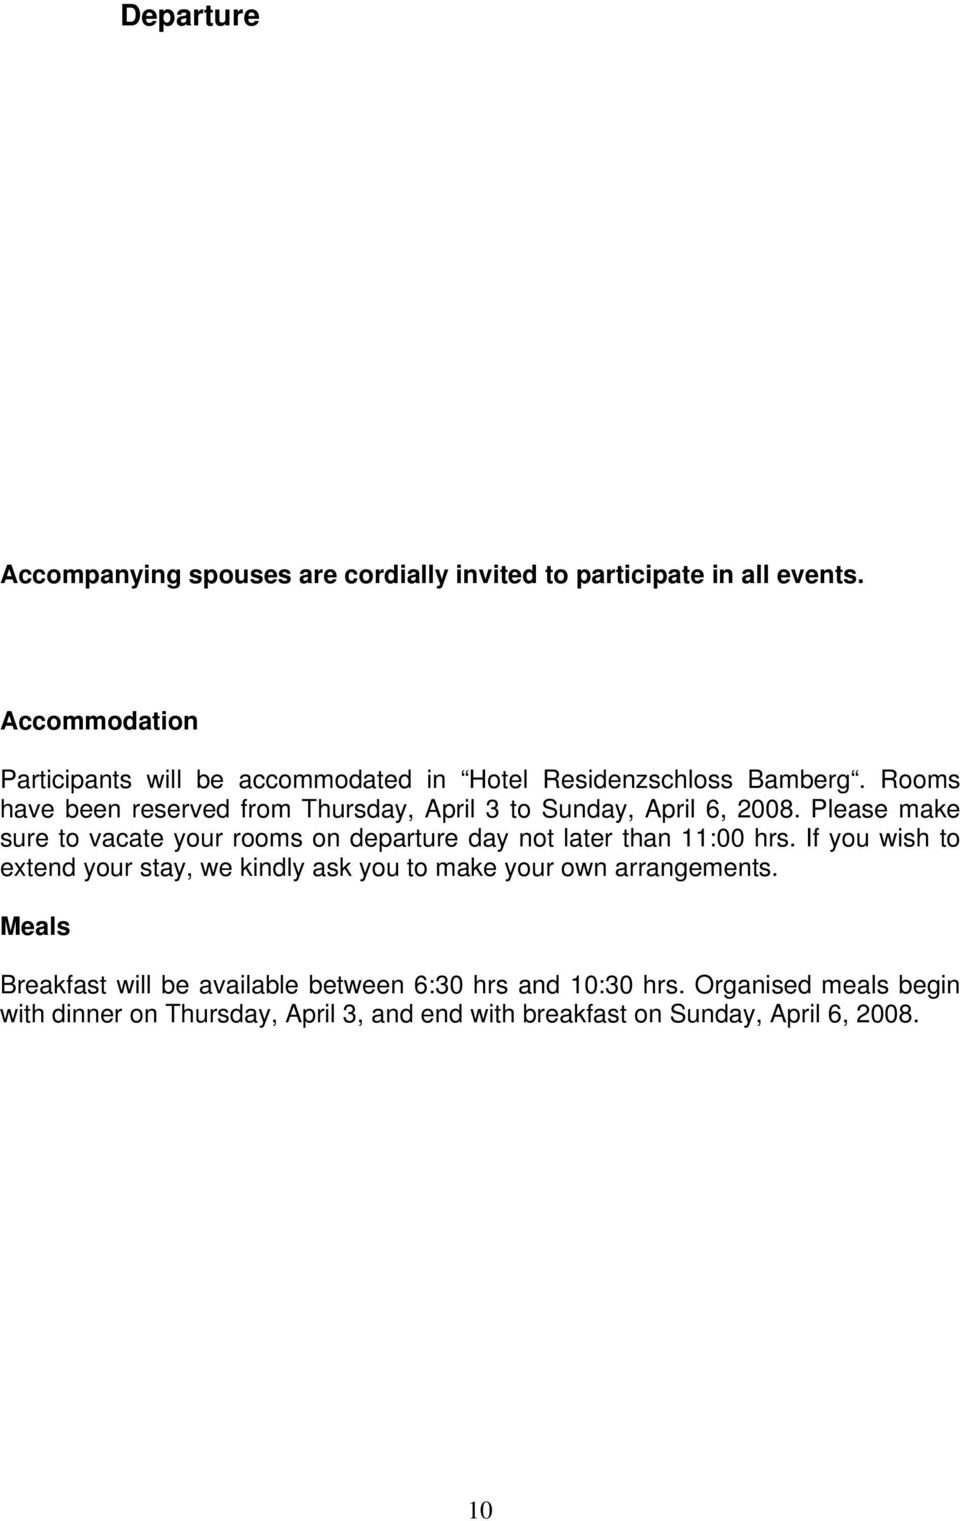 Rooms have been reserved from Thursday, April 3 to Sunday, April 6, 2008.